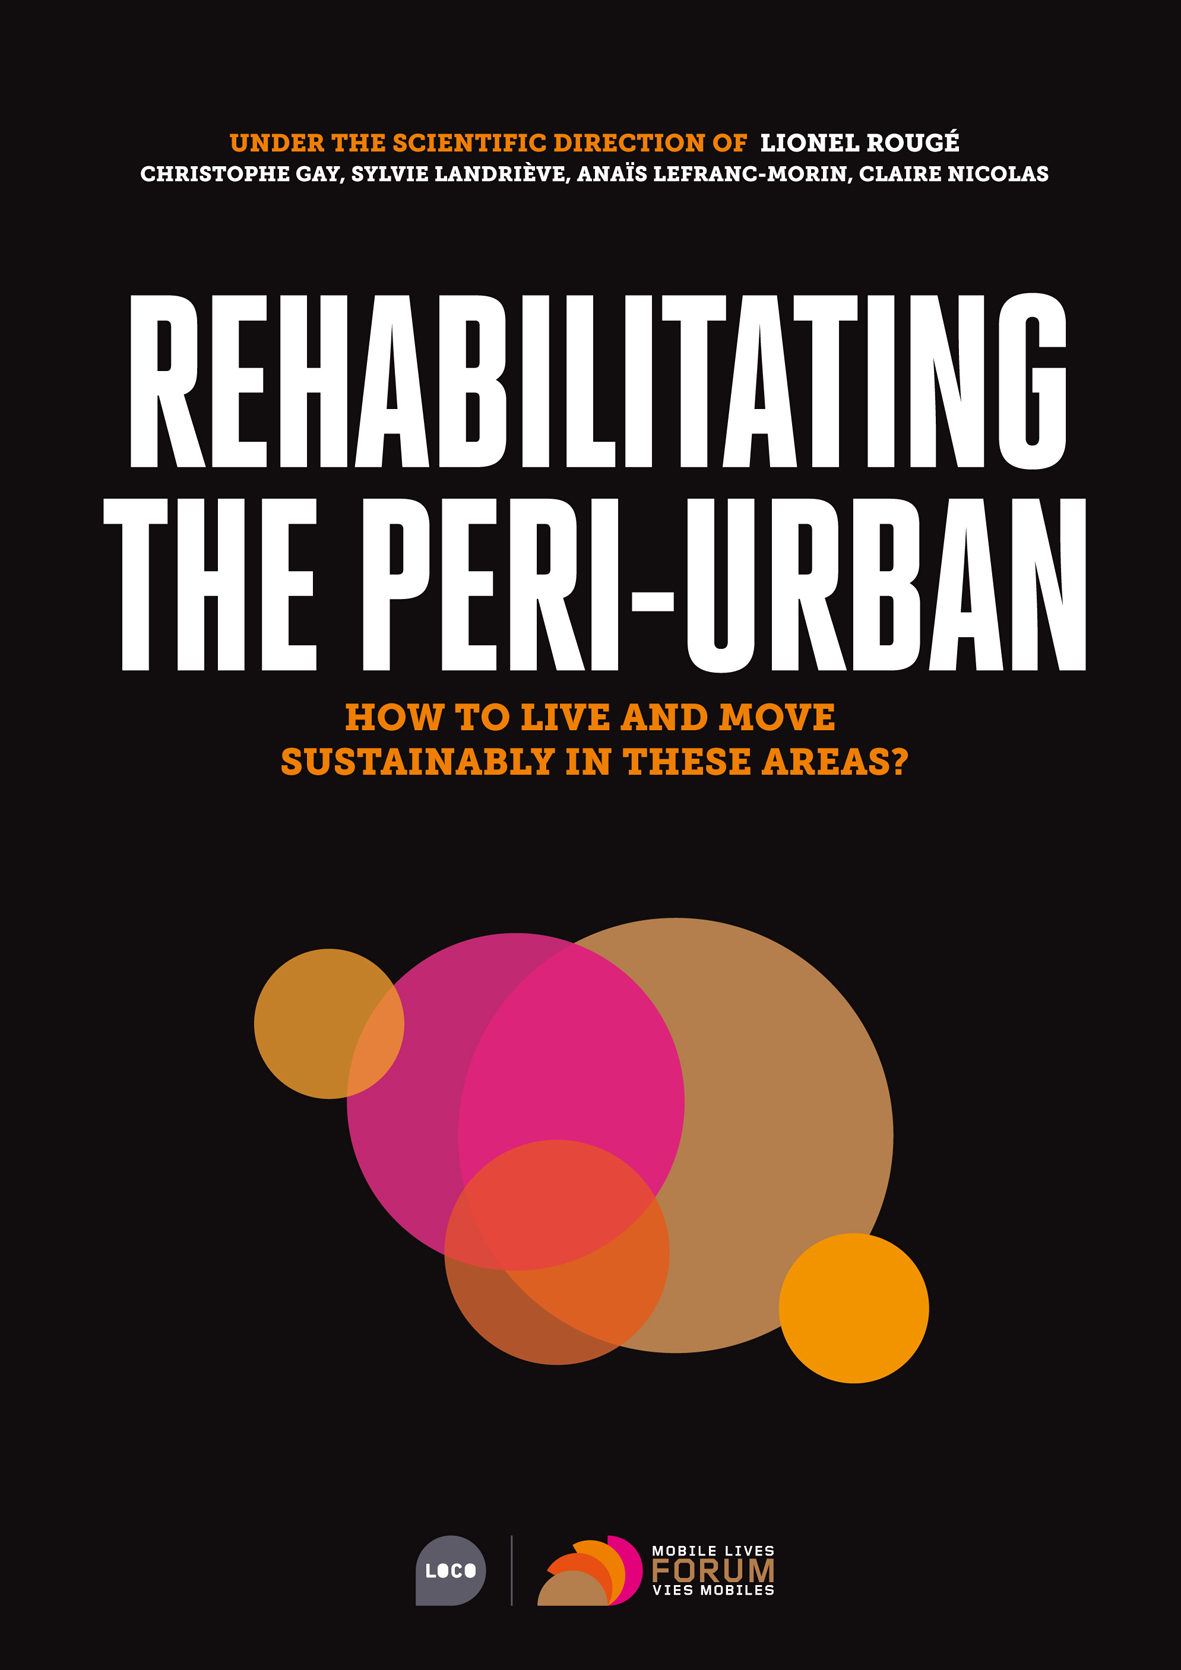 REHABILITING THE PERI-URBAN - HOW TO LIVE AND MOVE SUSTAINABLY IN THESE AREAS?